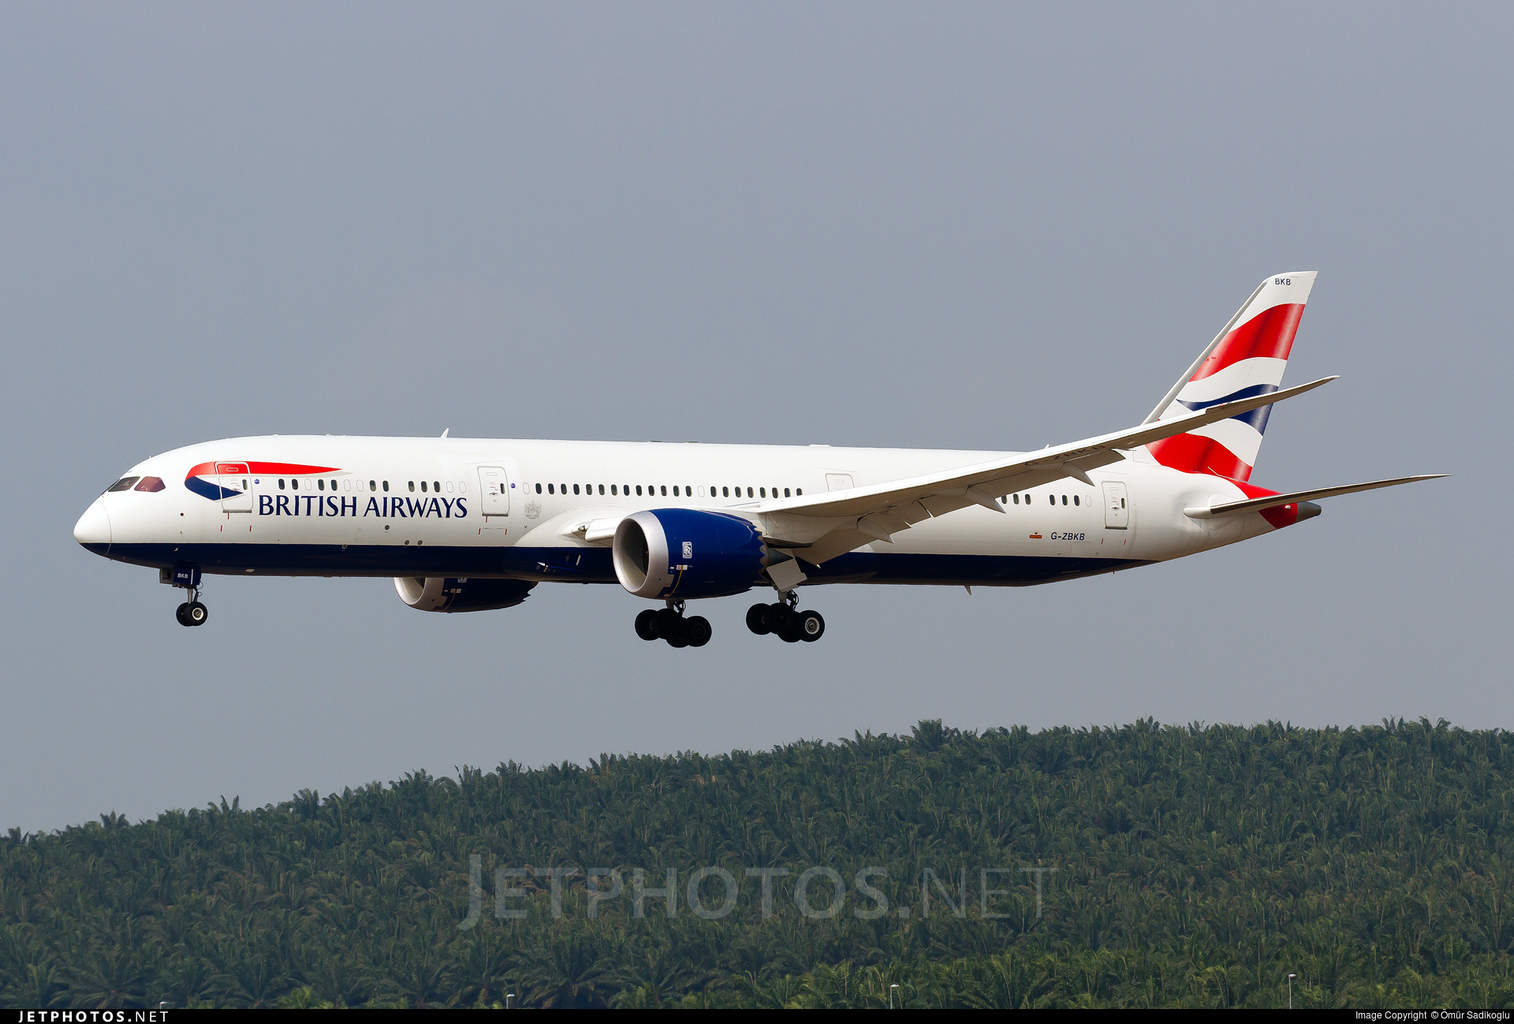 British Airways starts non-stop service to Doha and Muscat